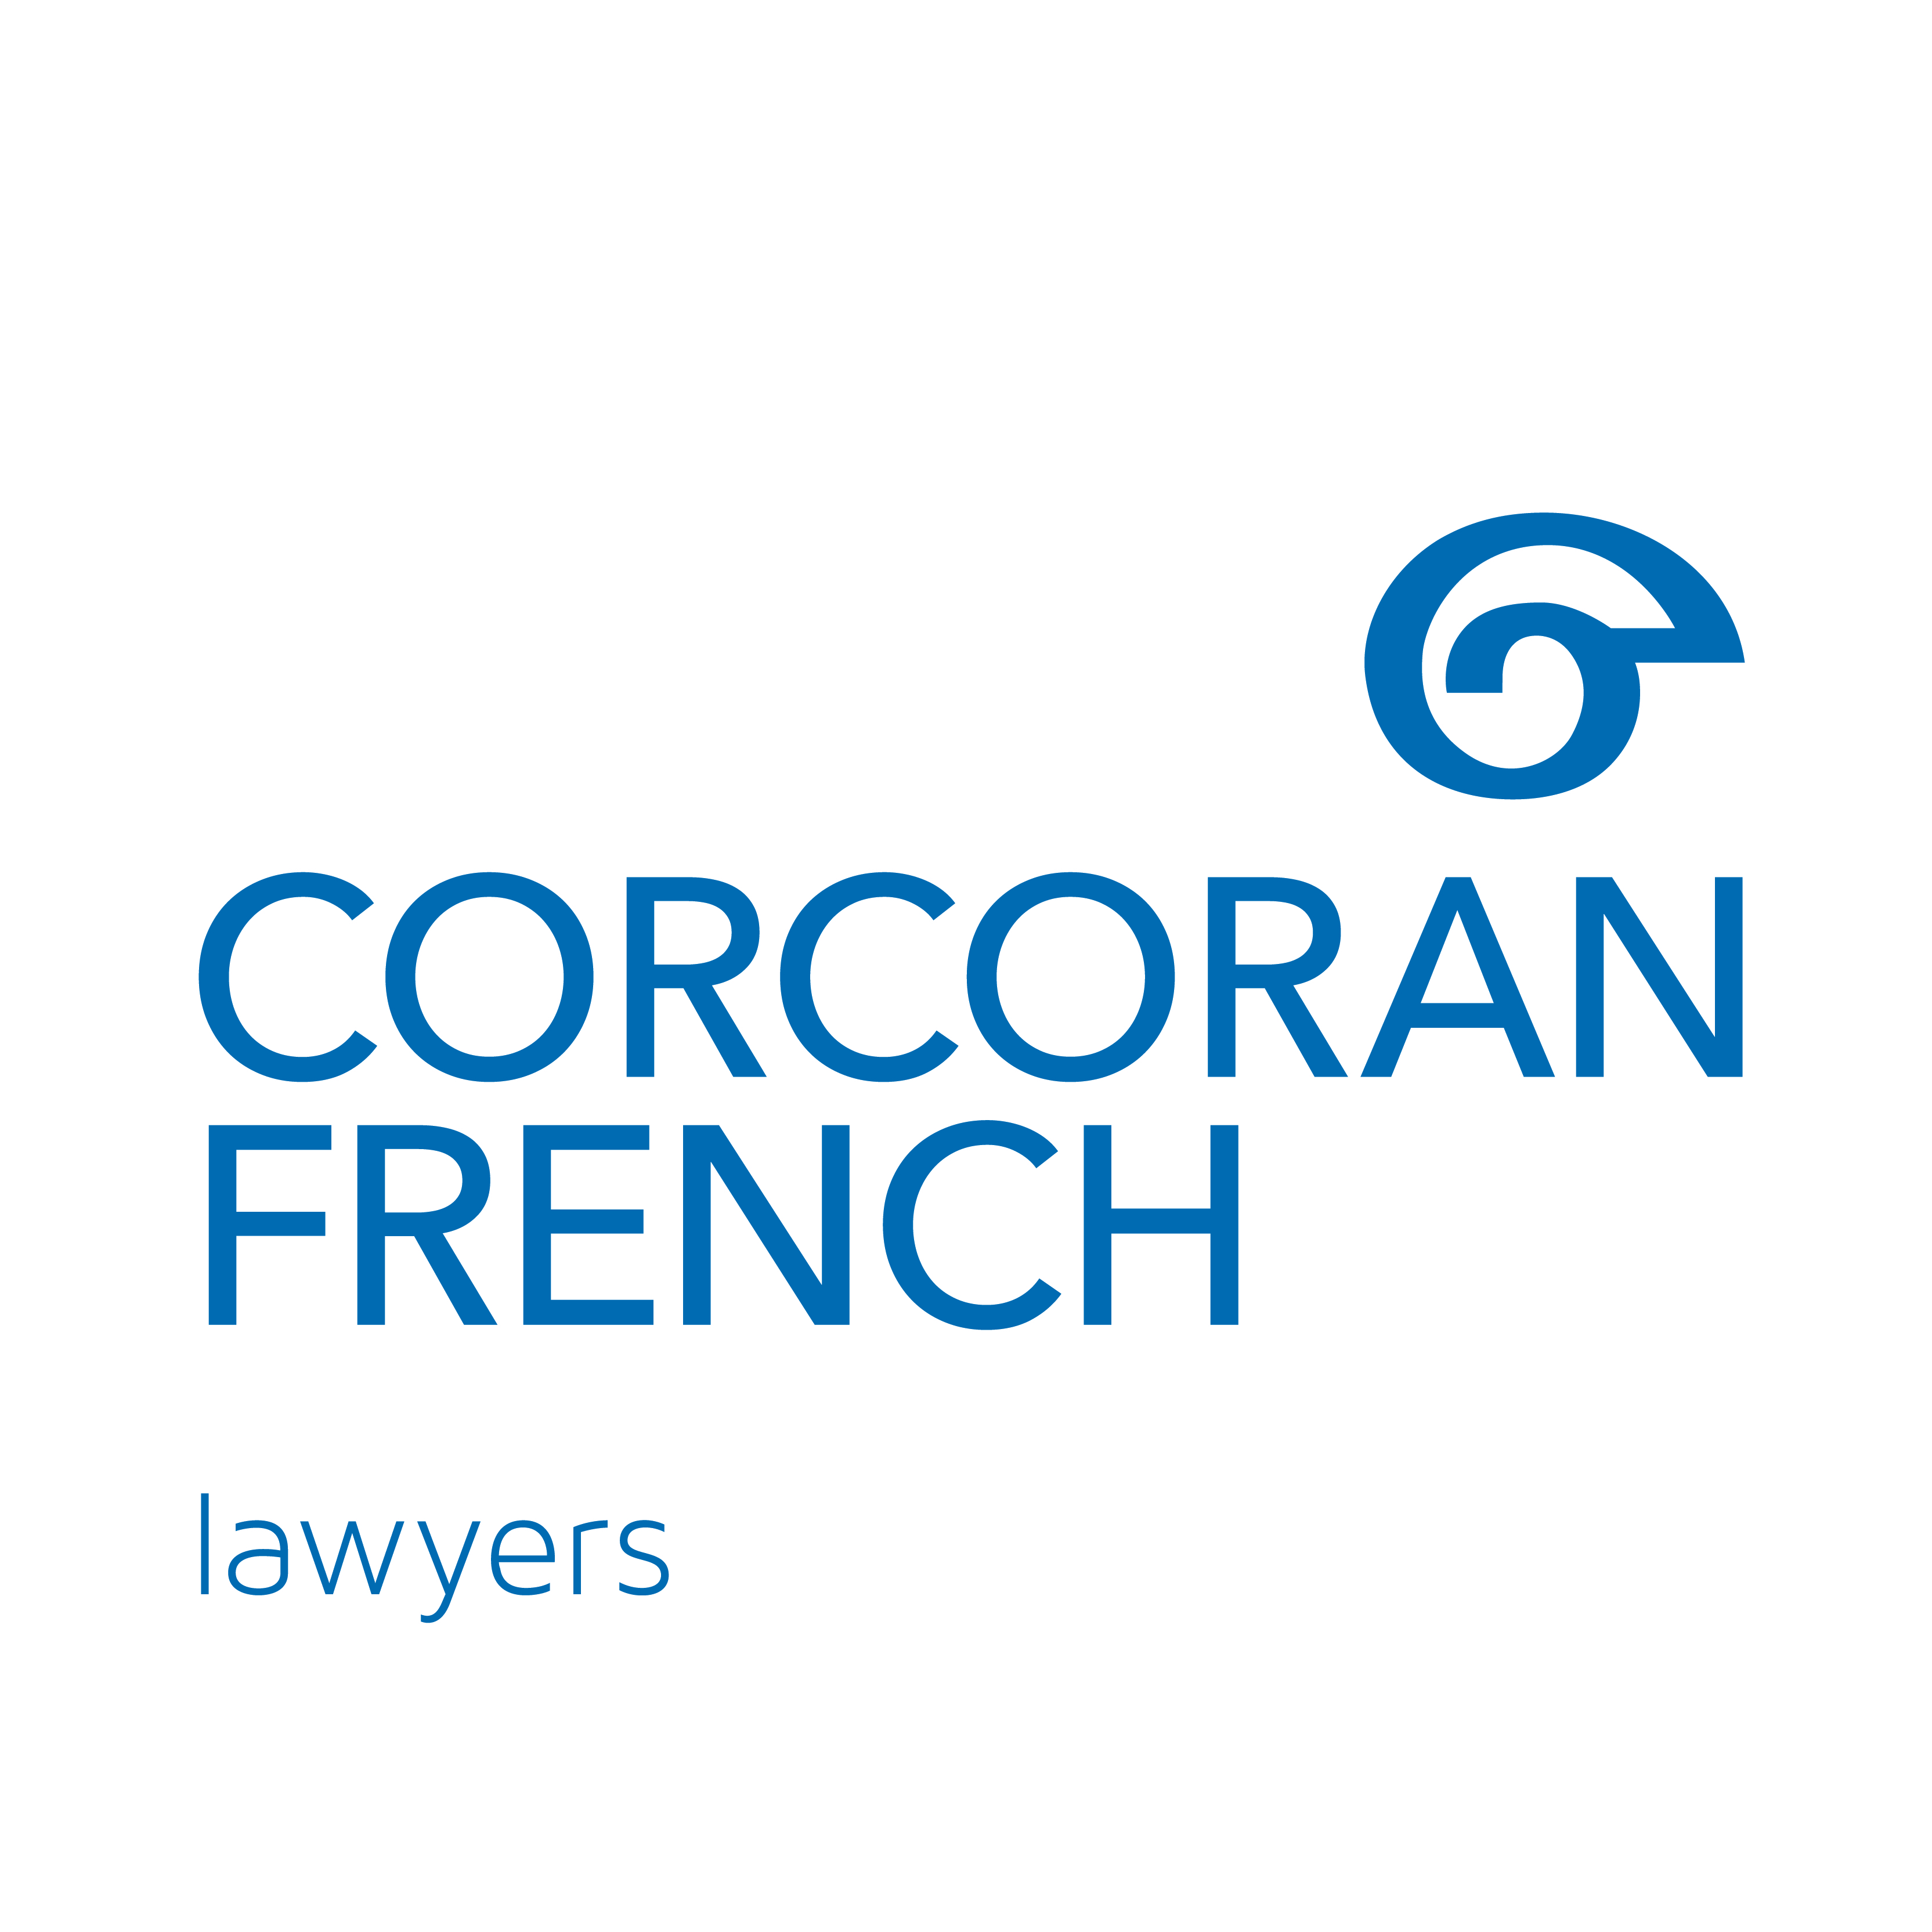 Christchurch canterbury conveyancing lawyers and law firms corcoran french logo solutioingenieria Image collections